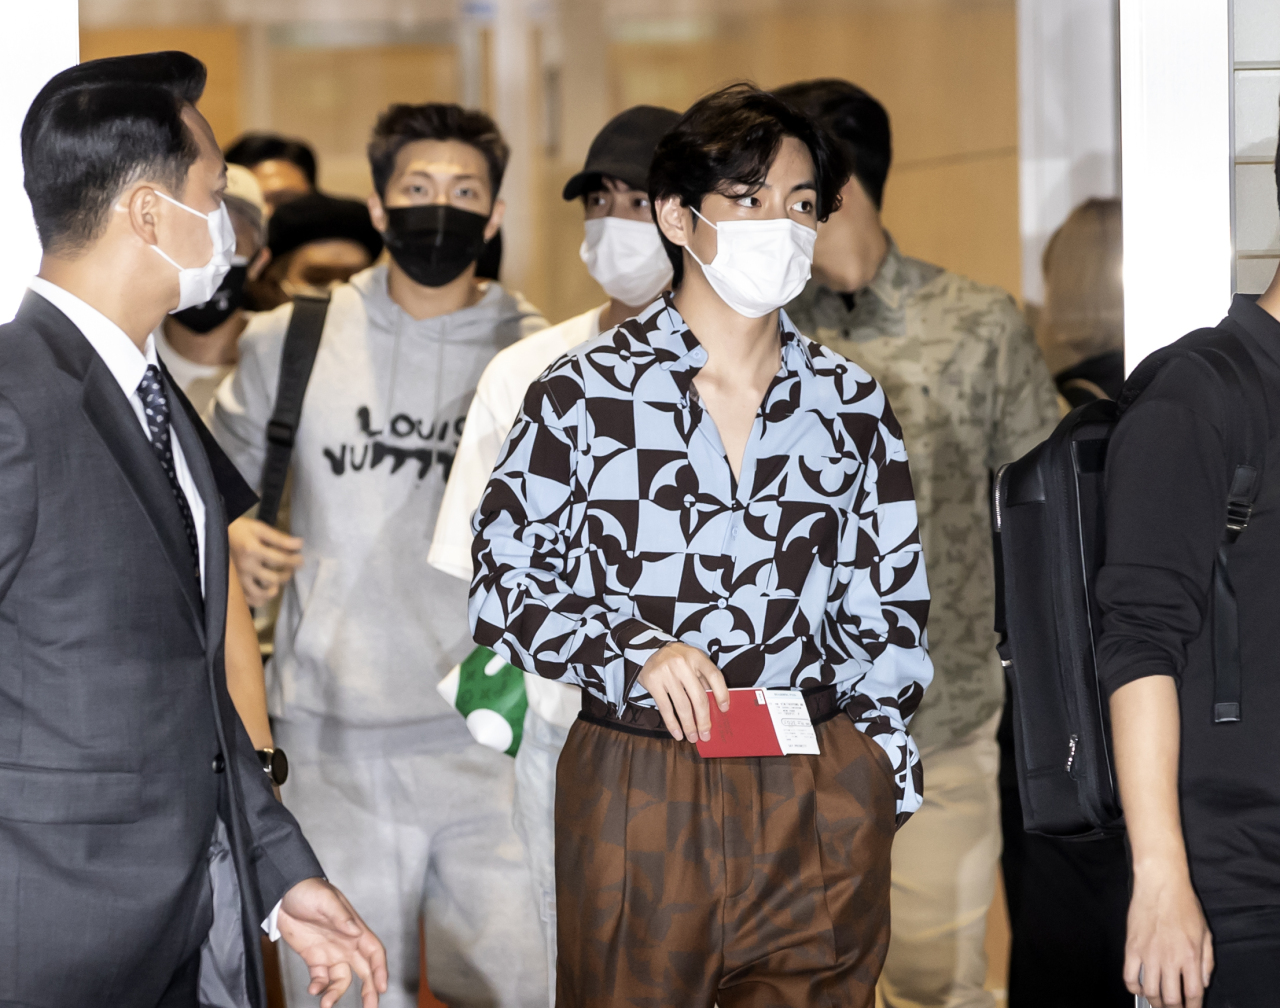 K-pop boy band BTS' members including V (front row, right) are seen walking at the Incheon International Airport terminal 2 Saturday to attend a United Nations event as a special presidential envoy in New York. (Yonhap)